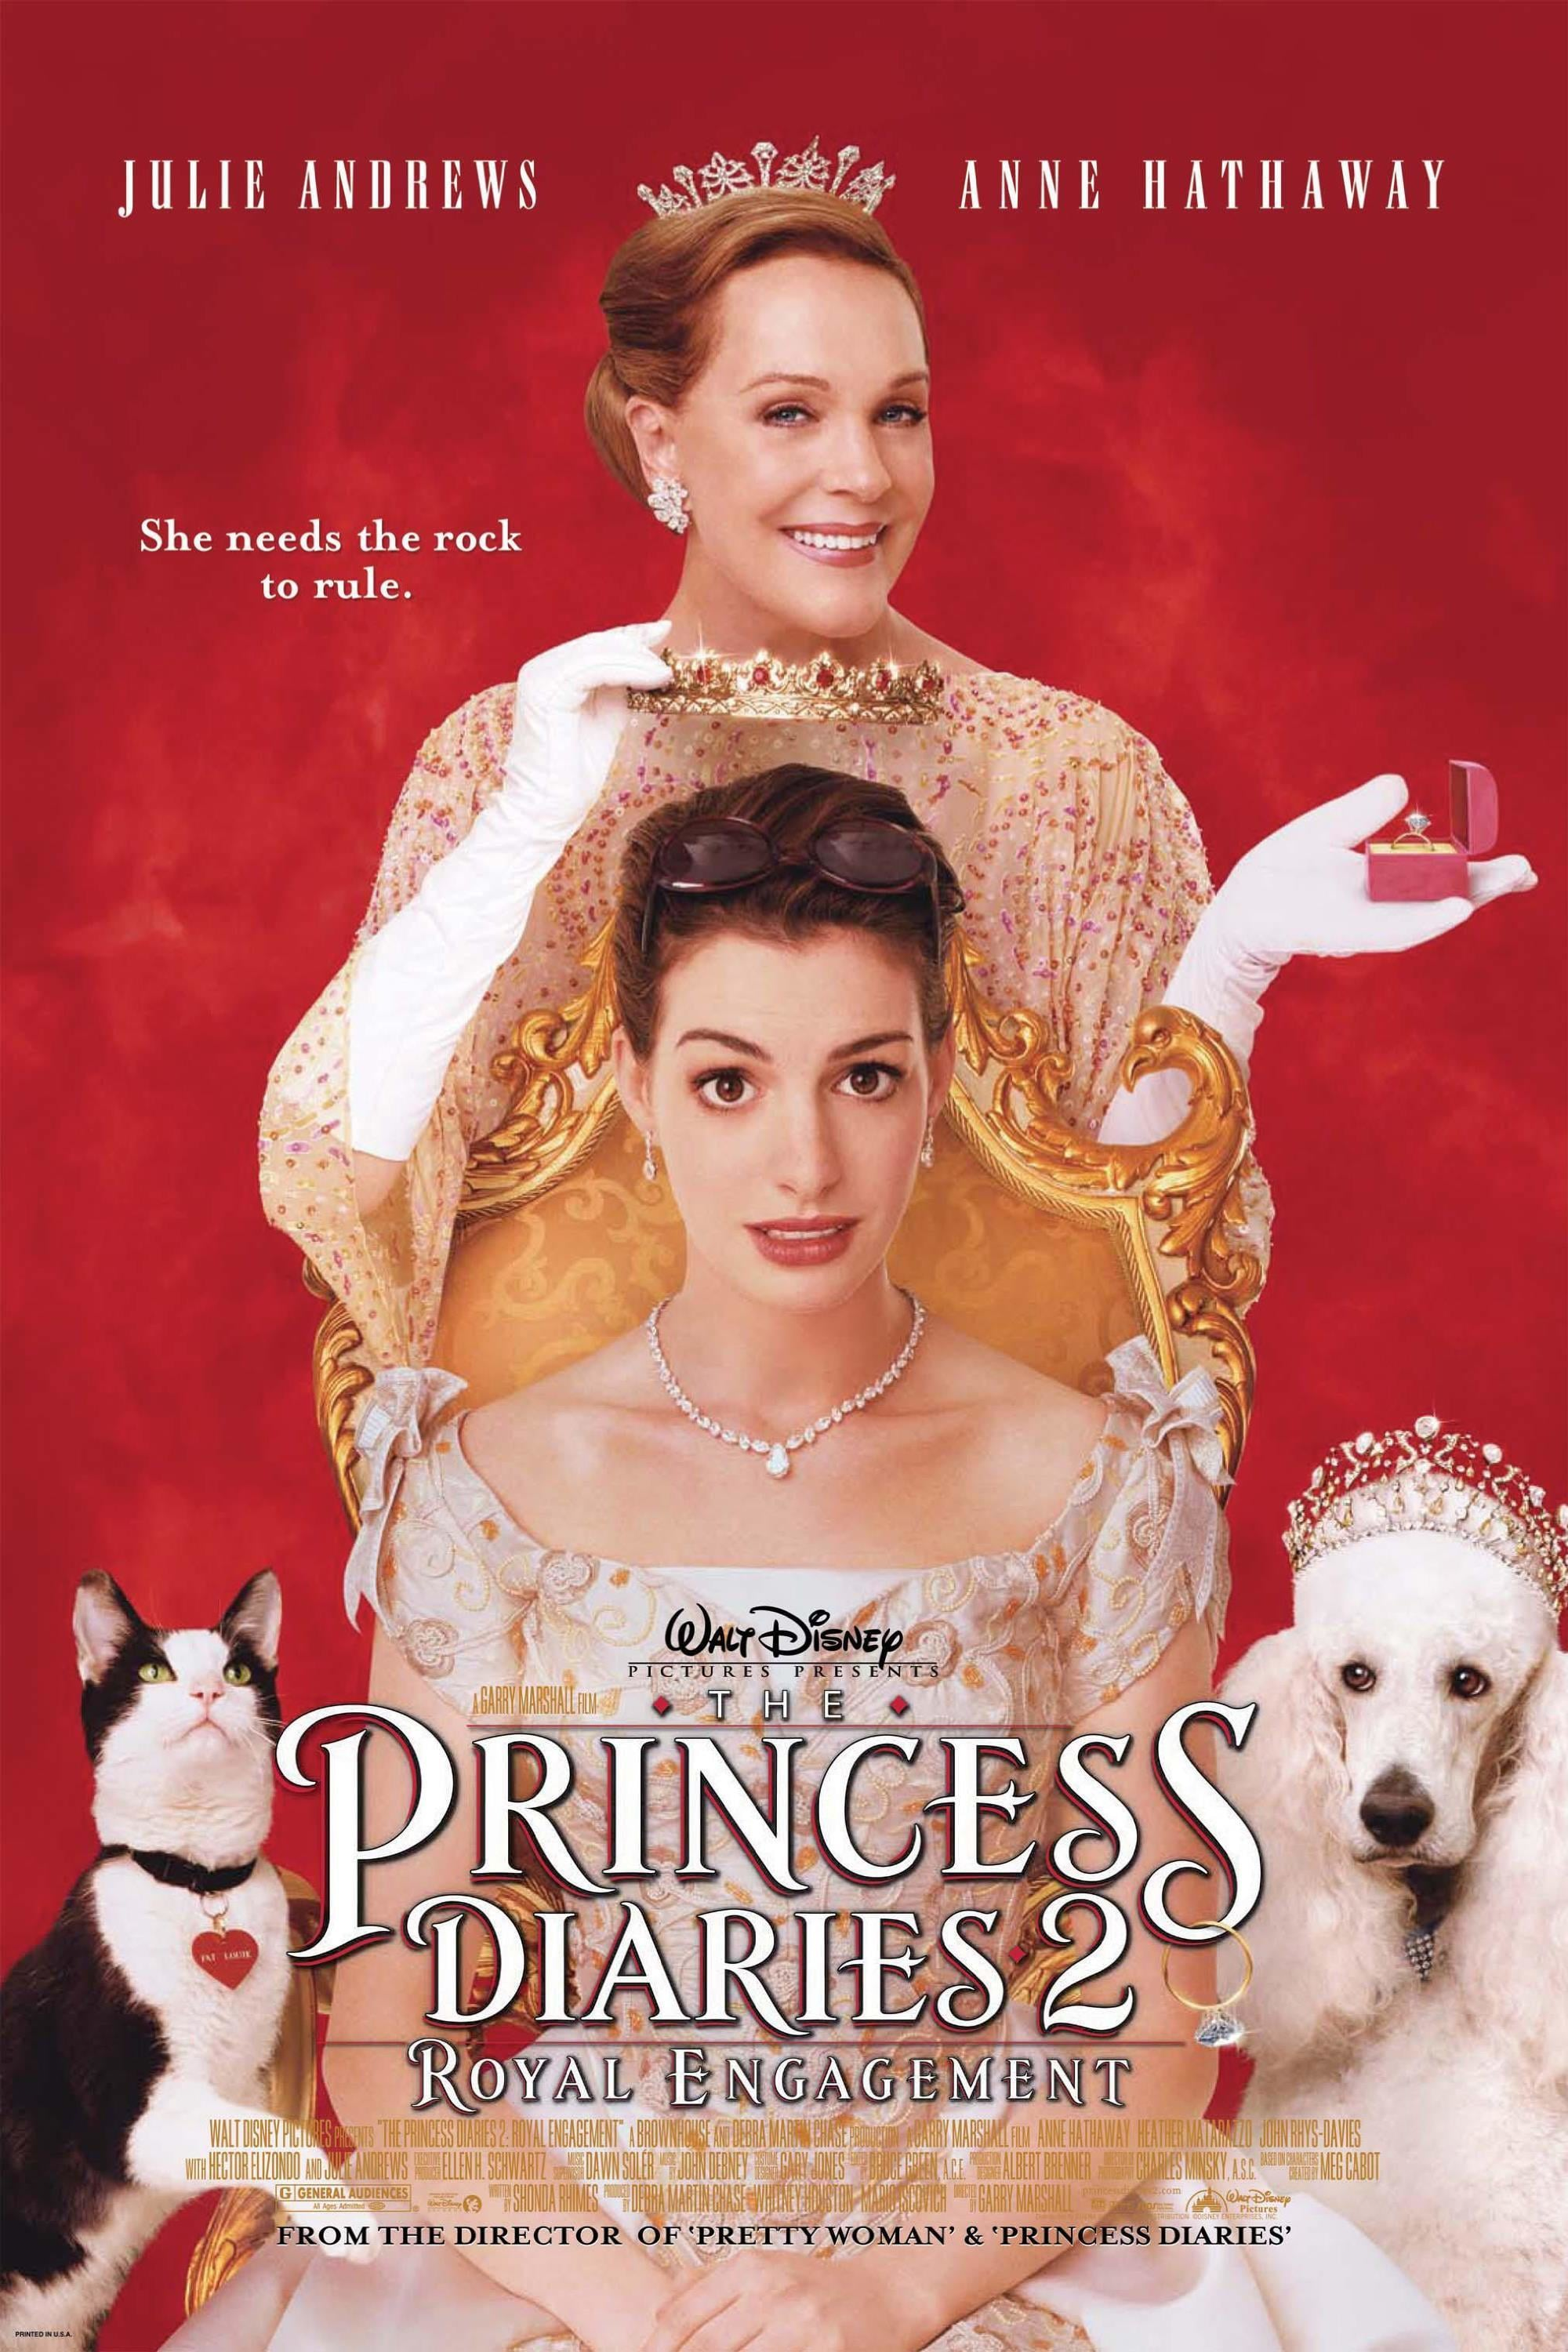 http://img4.wikia.nocookie.net/__cb20140410184901/disney/images/1/12/Movie_the_princess_diaries_2.jpg